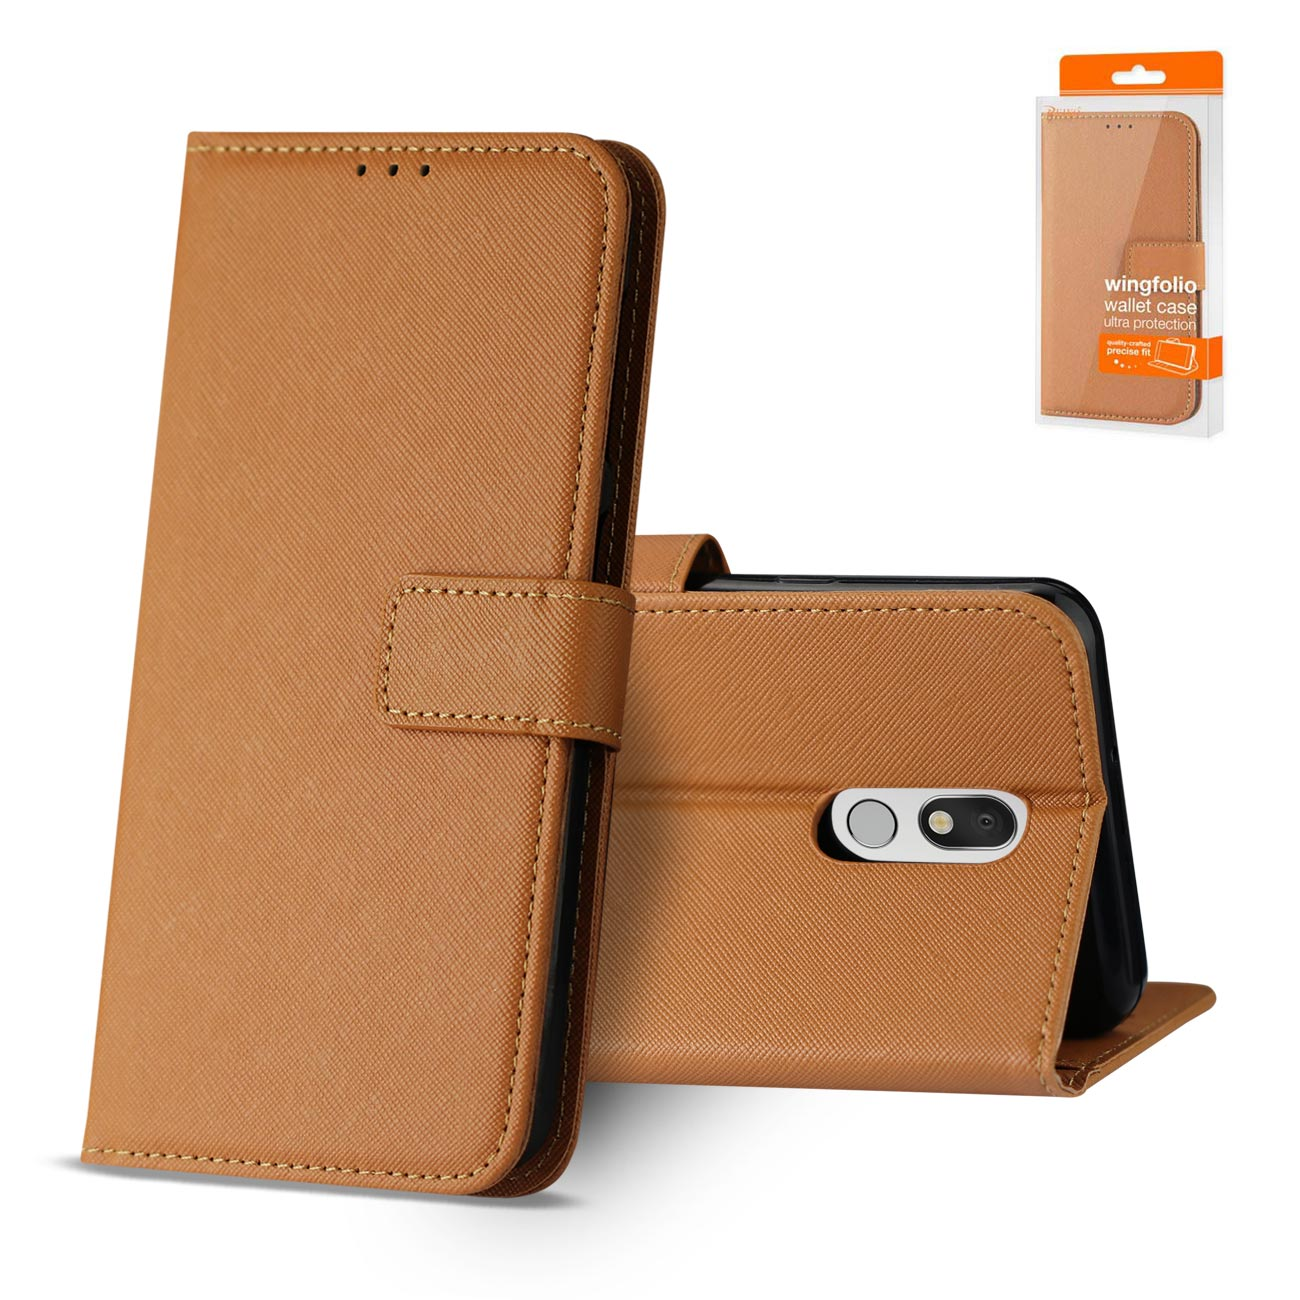 LG STYLO 5 3-In-1 Wallet Case In BROWN